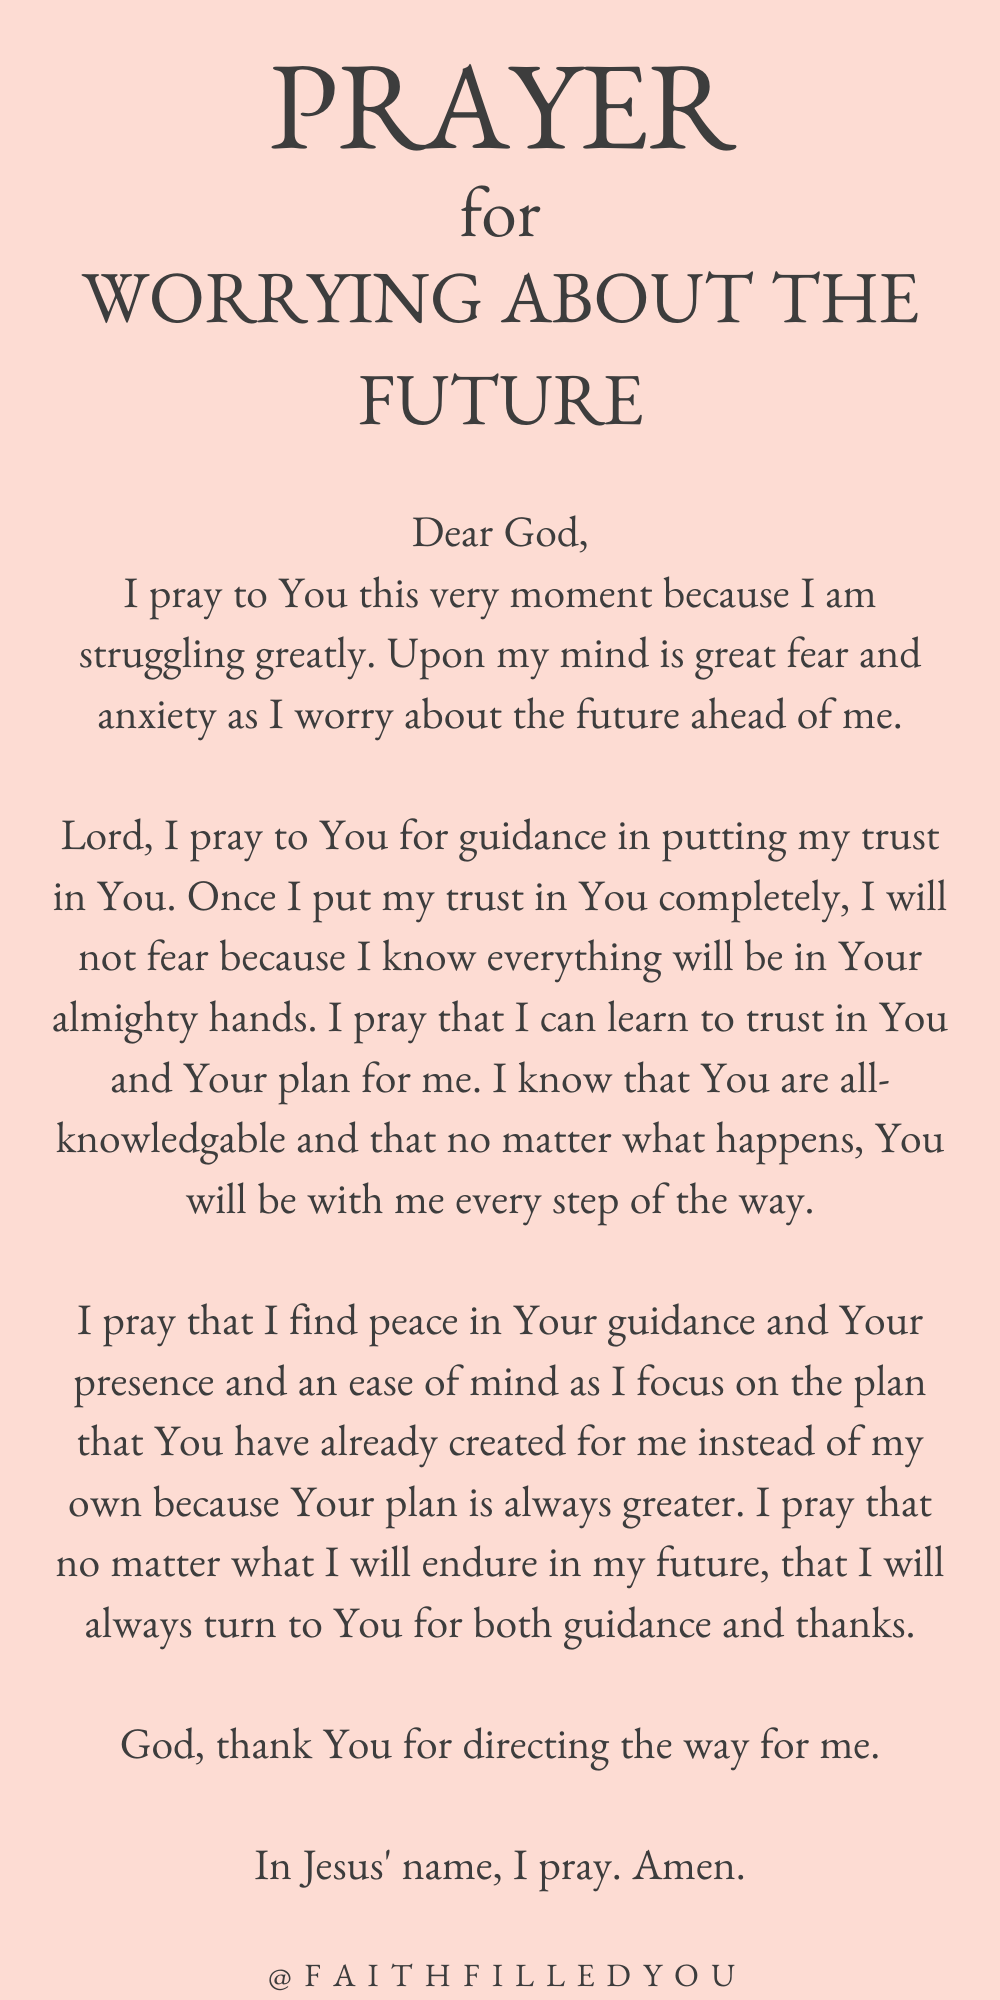 A Prayer For Anxiety About The Future